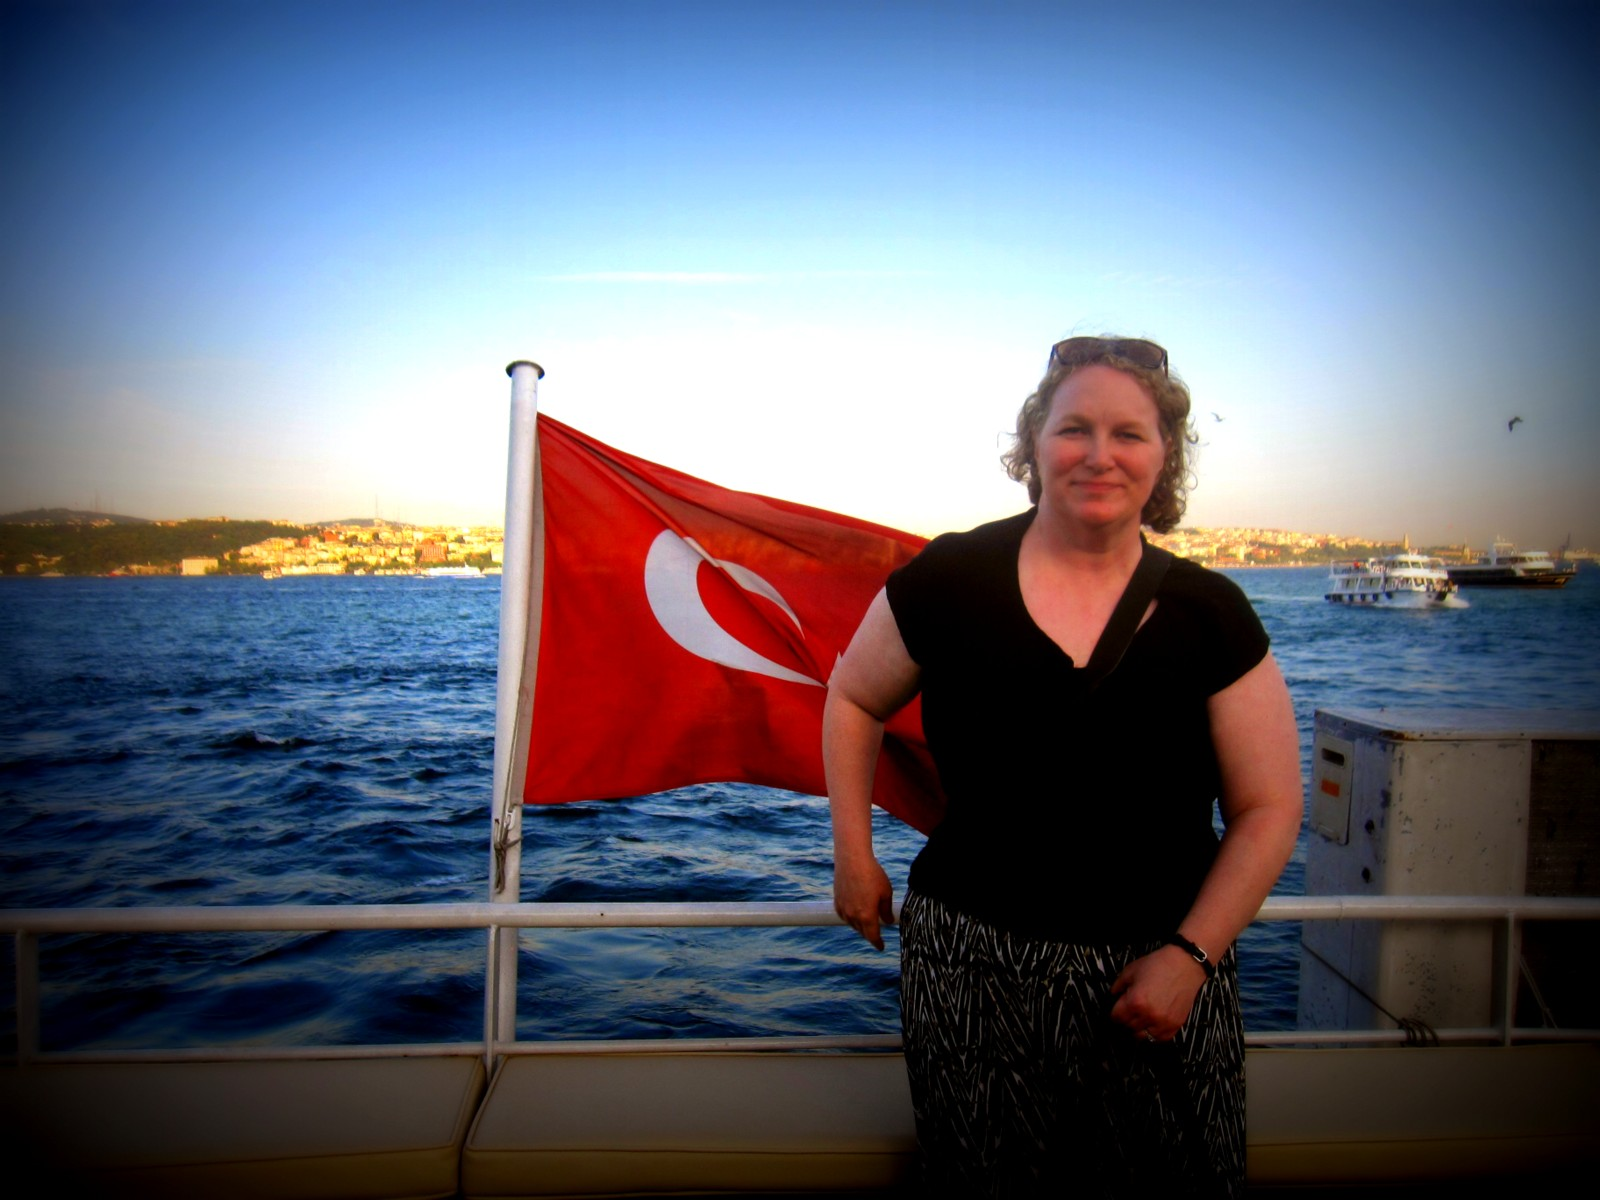 Jessie Voigts on the Bosphorus, Turkey